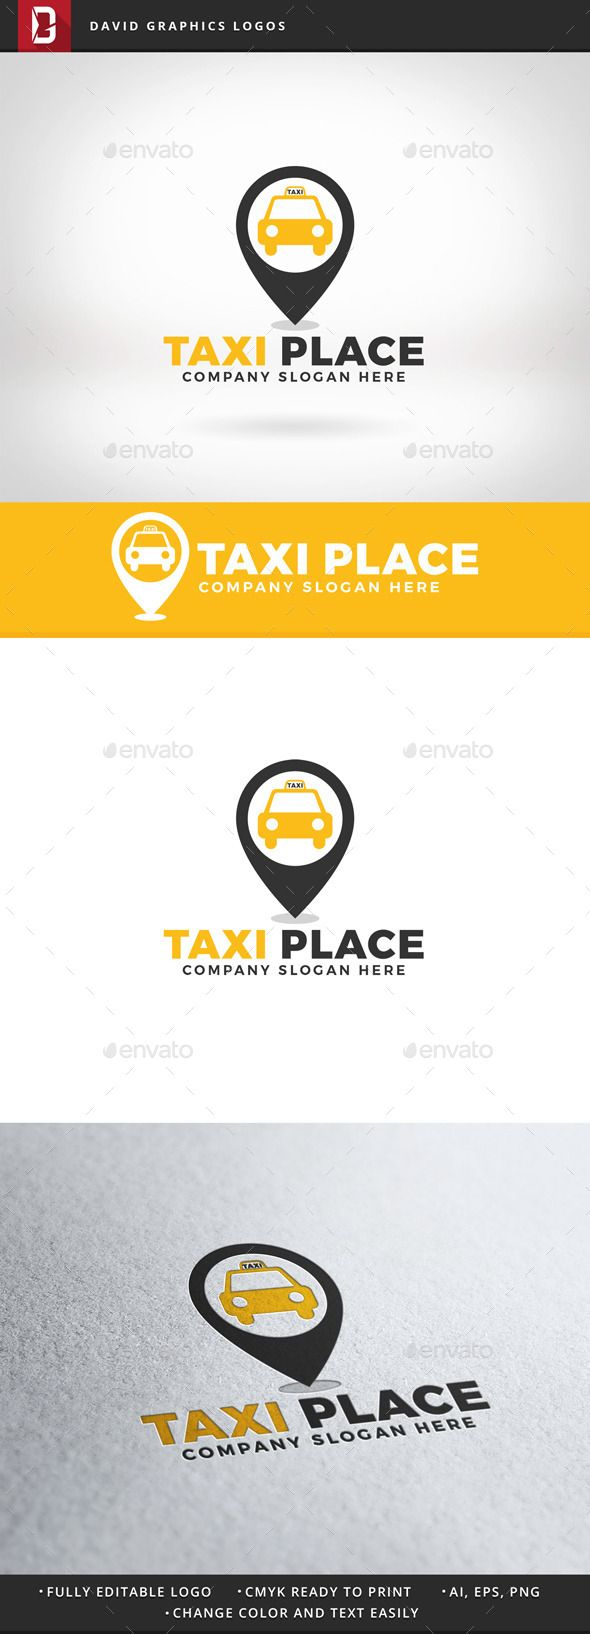 Pin By C Thong Narong On Taxi Driver Pinterest Logo Design